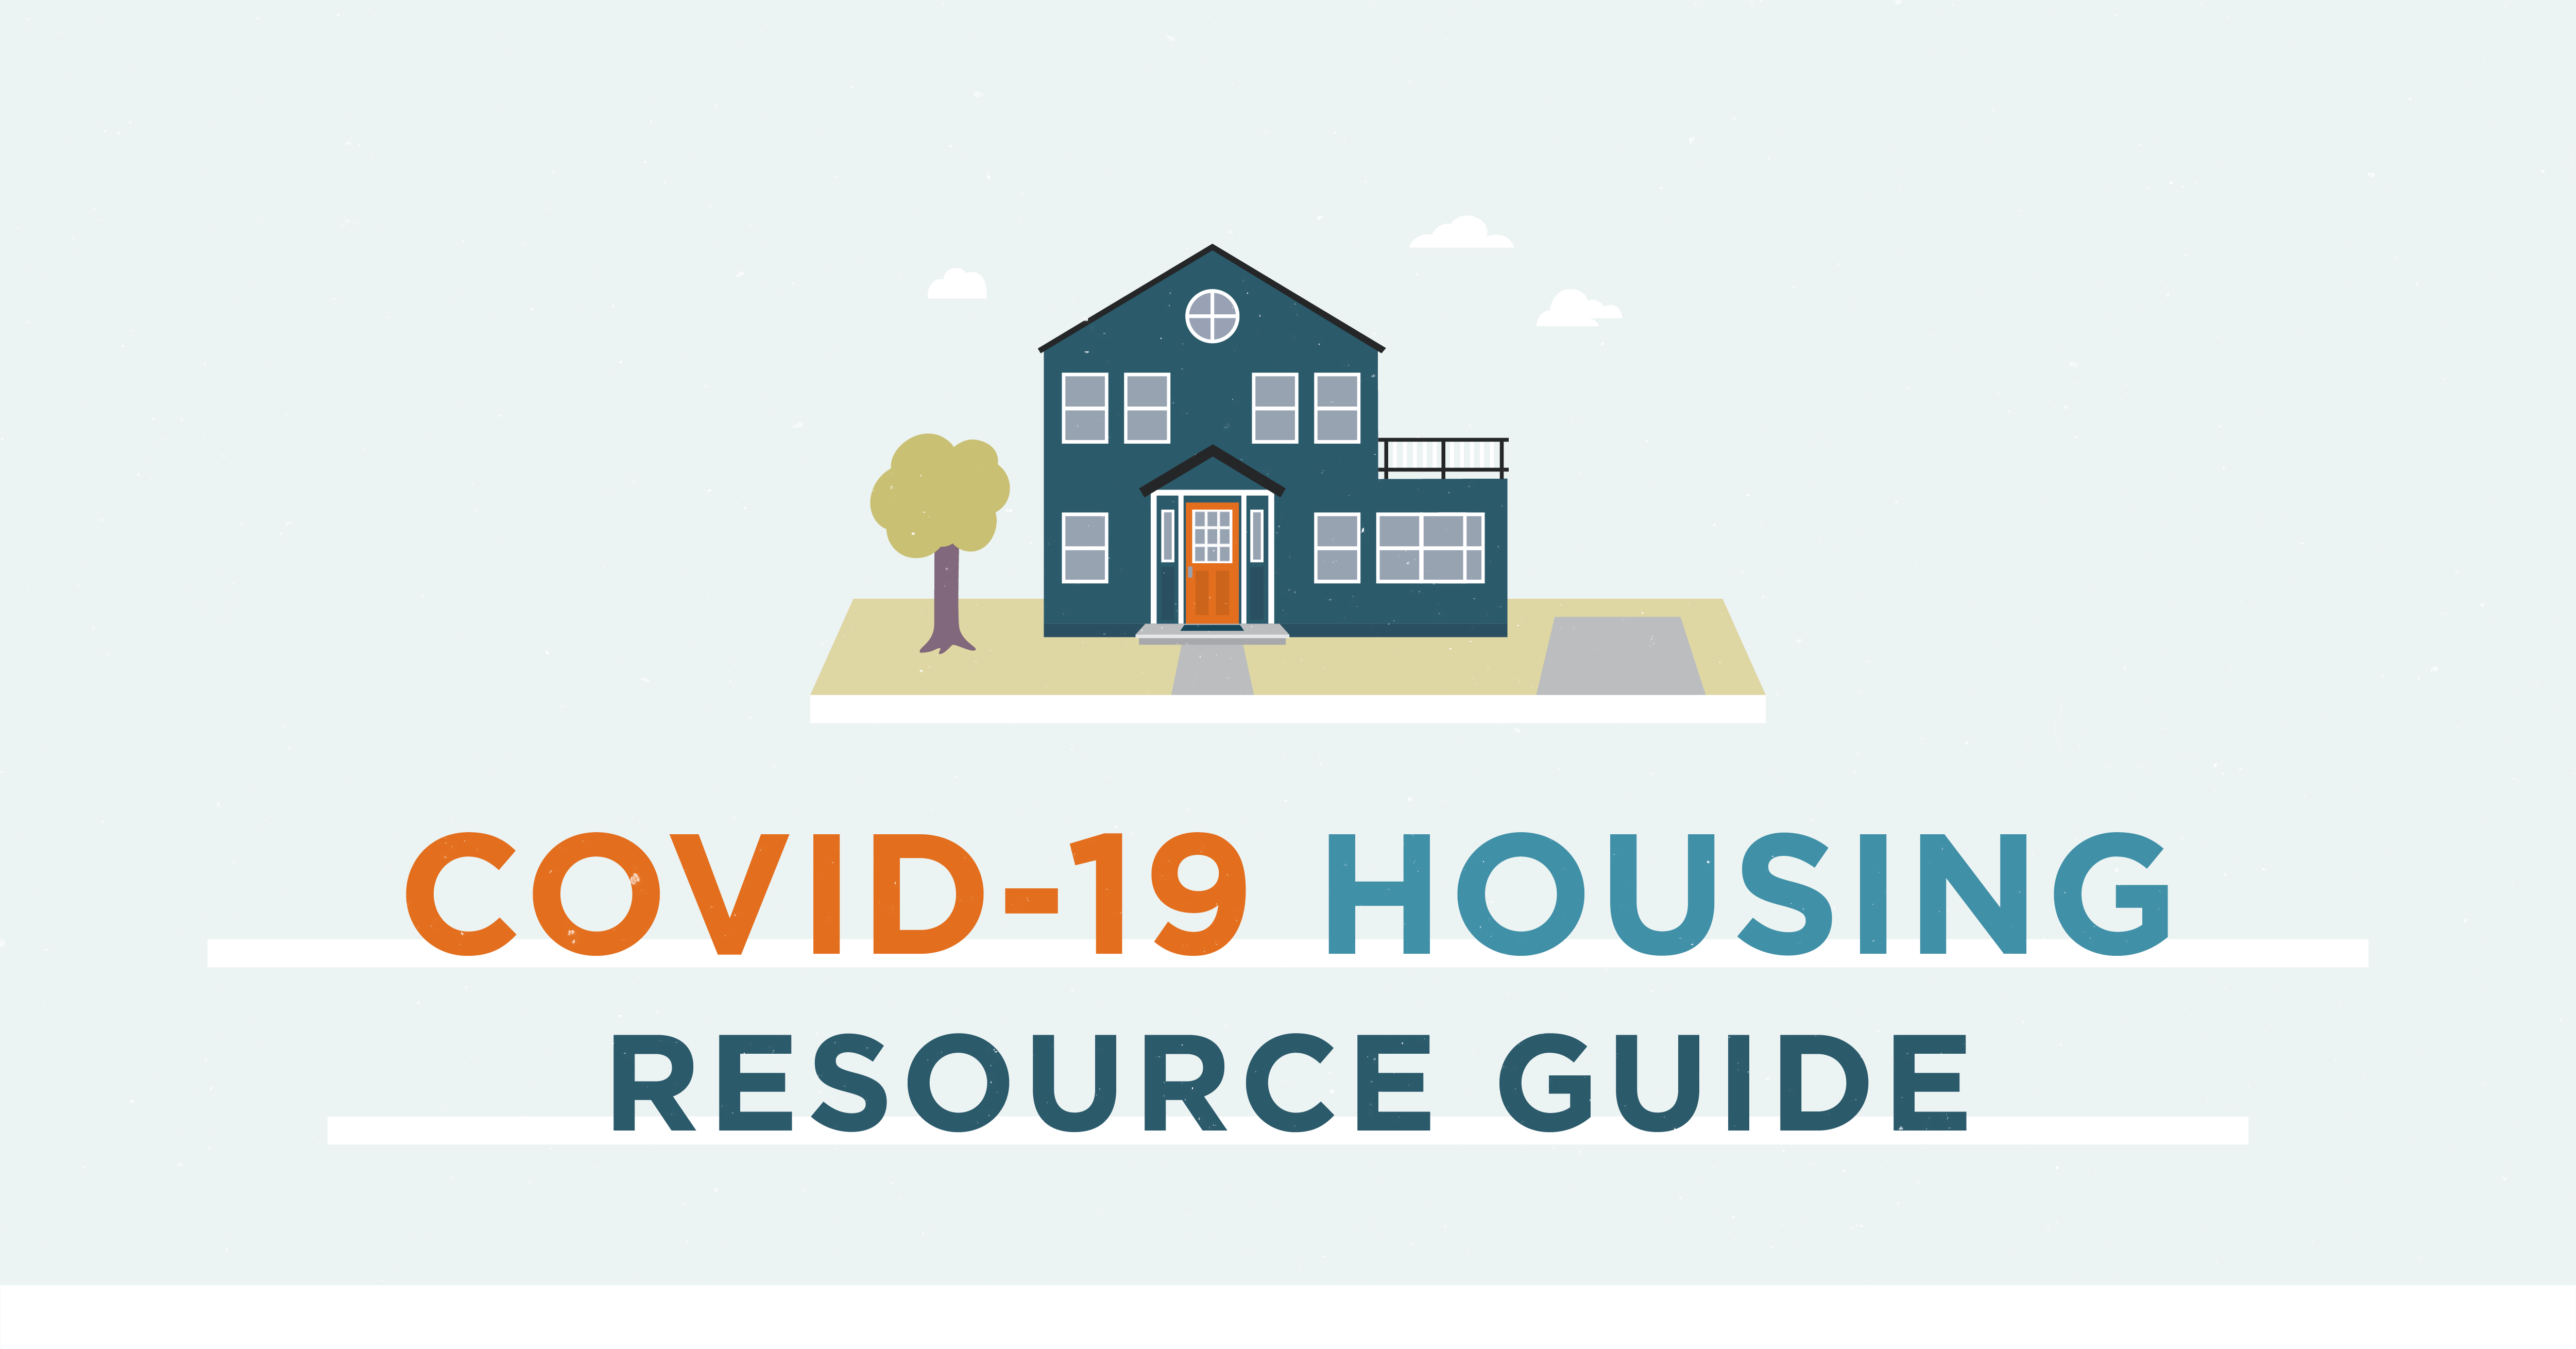 COVID-19 Housing Resource Guide